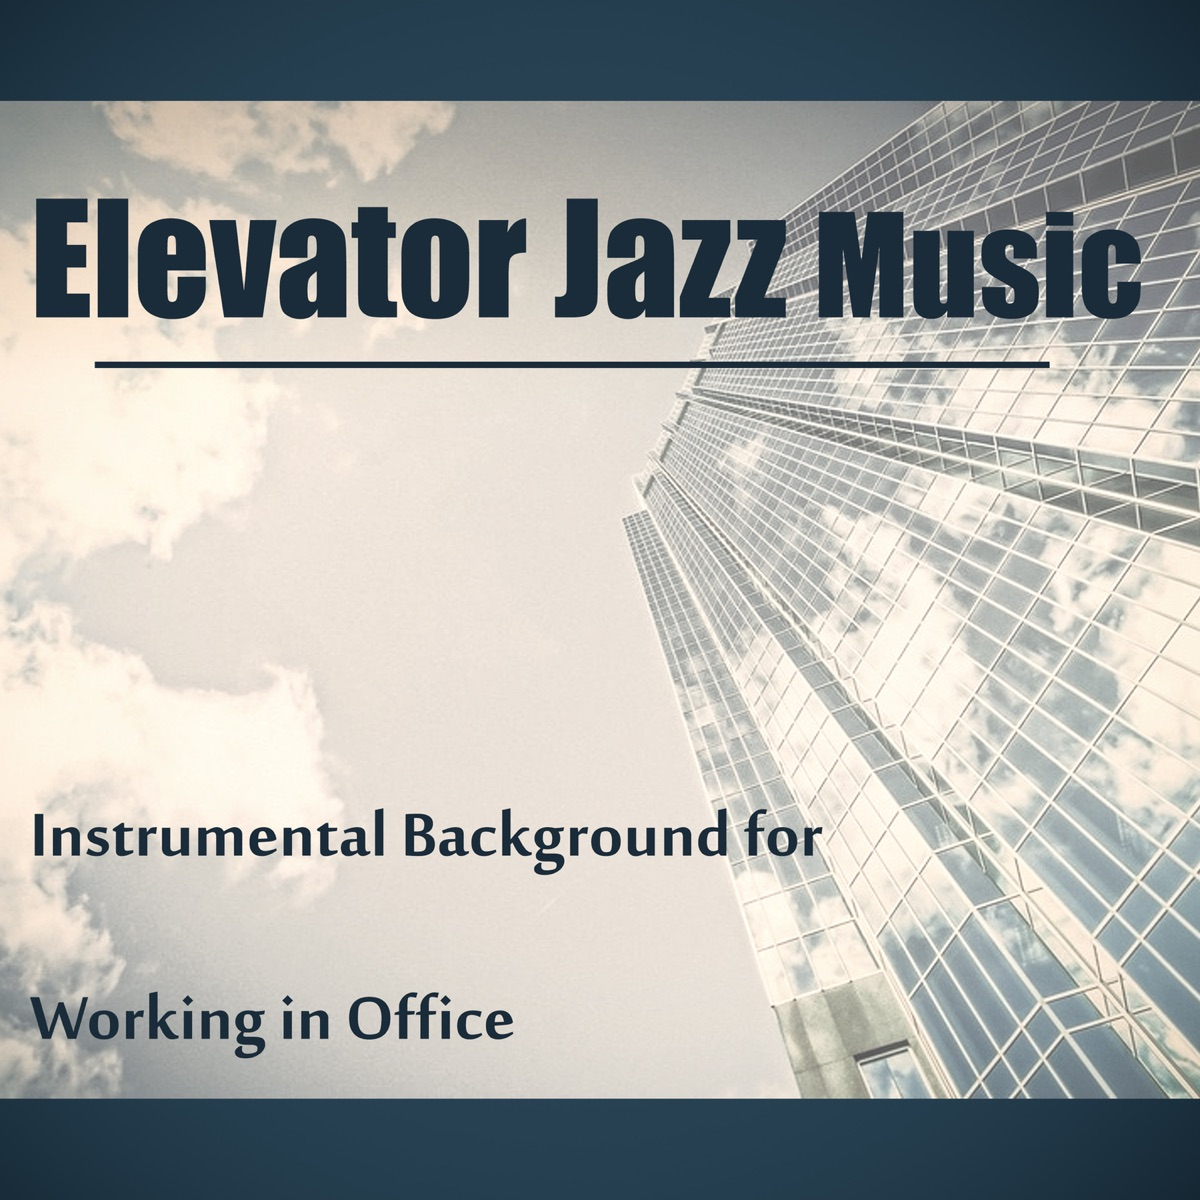 Elevator Jazz Music: Best of Lounge Jazz Music, Instrumental